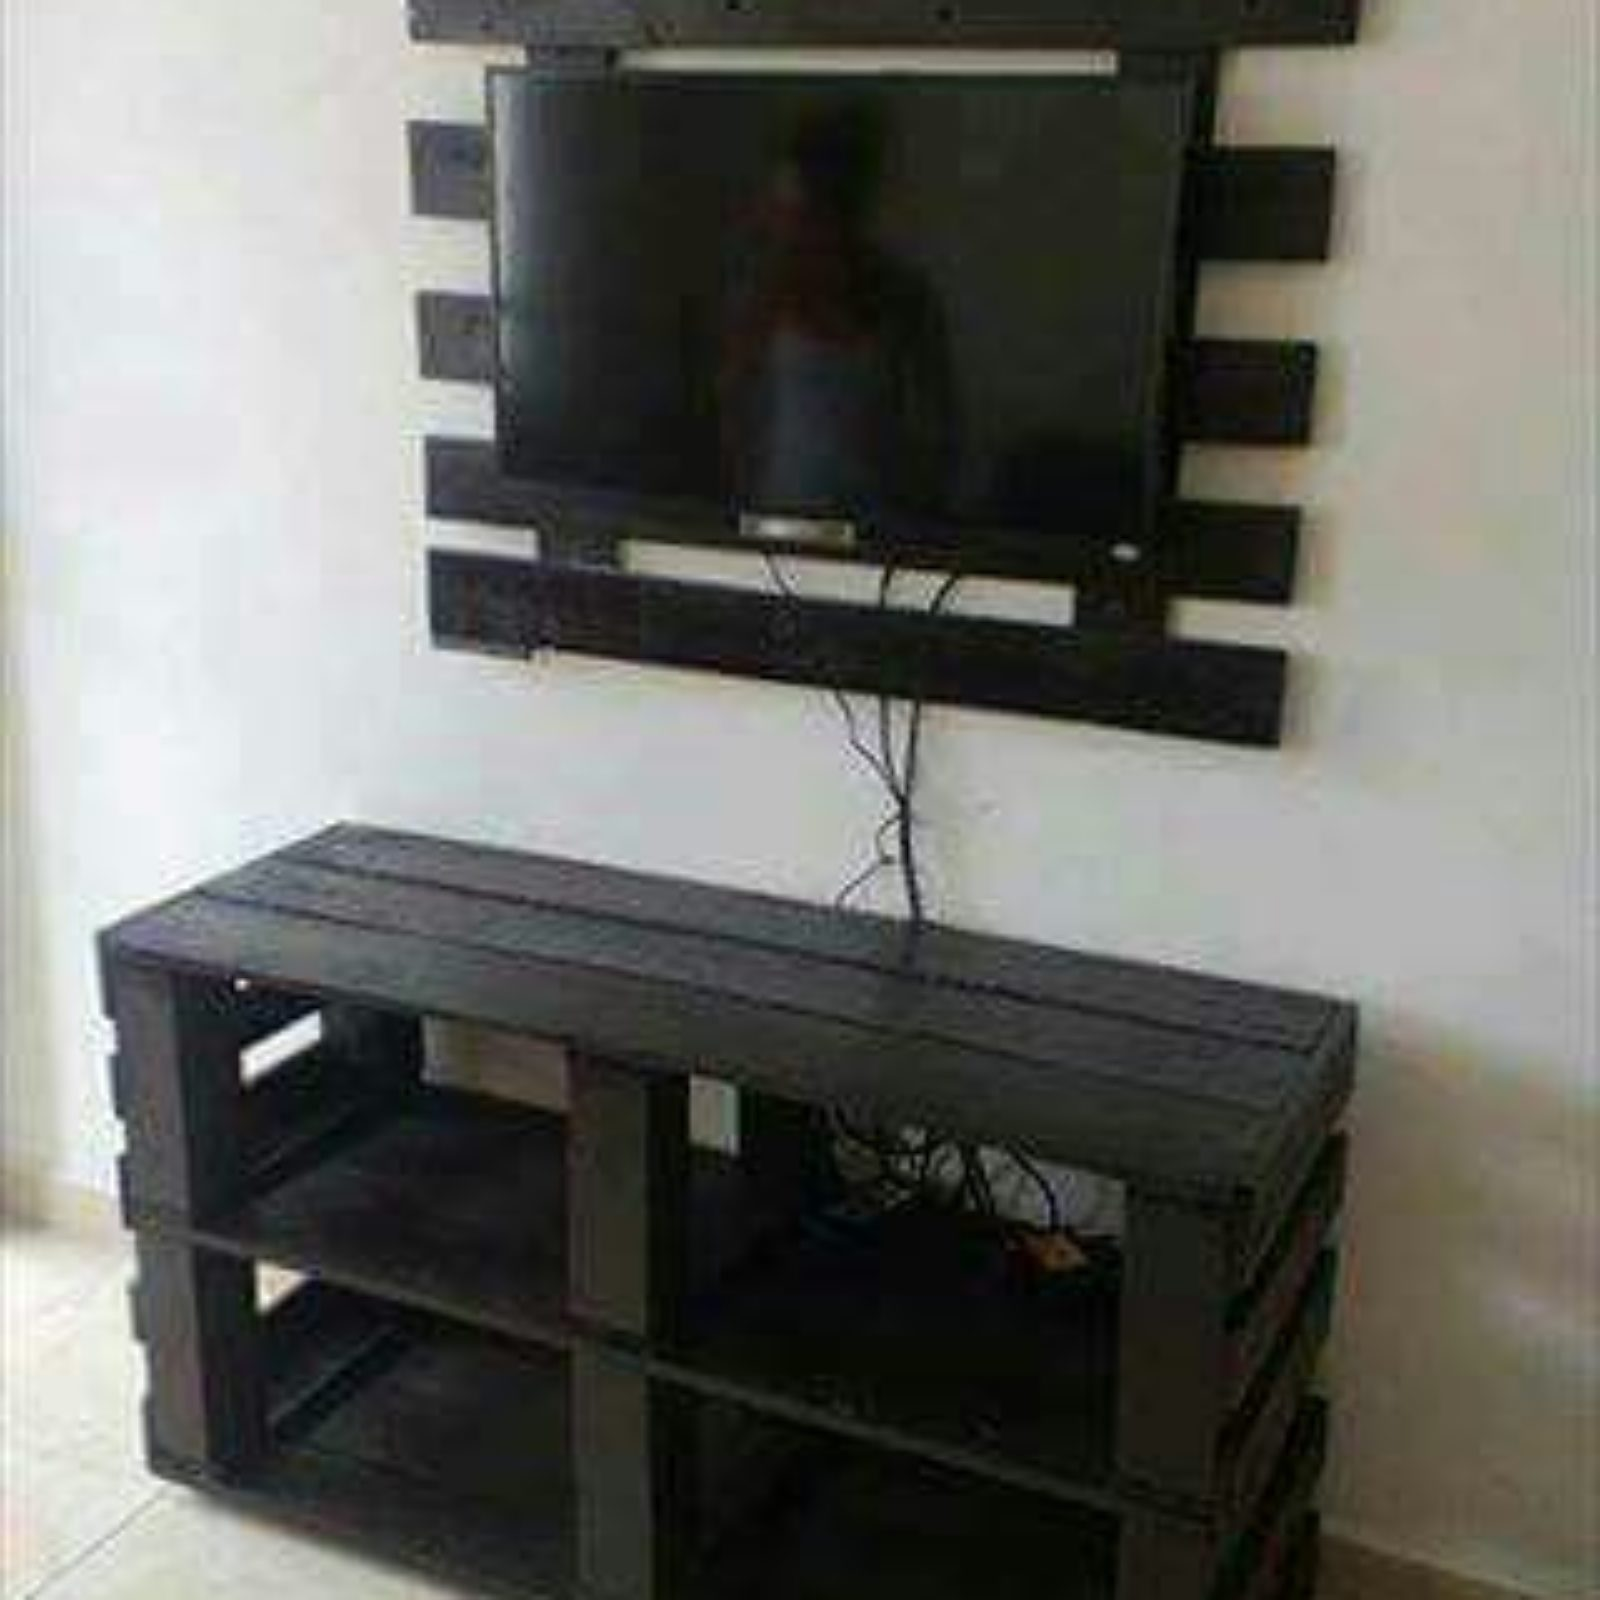 TV Option 1